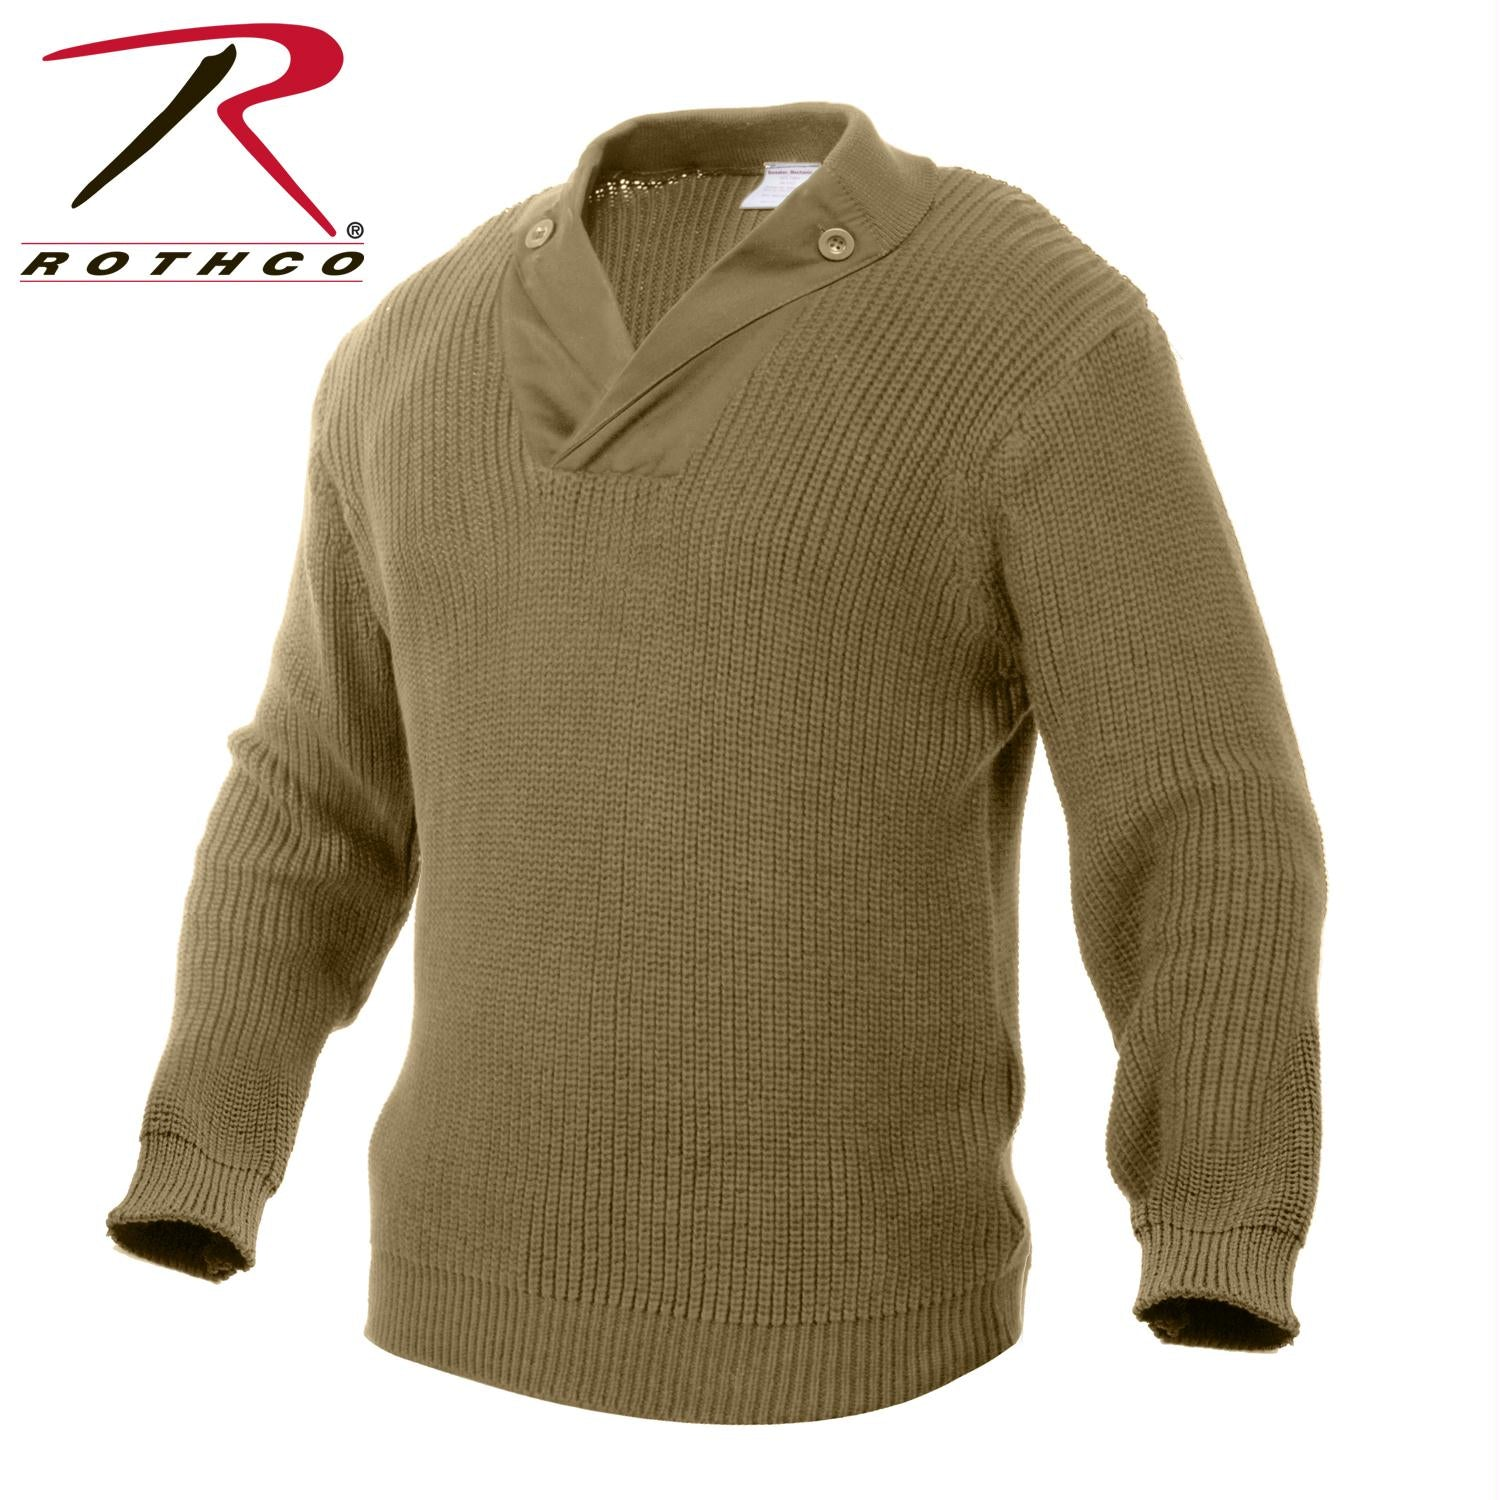 Rothco WWII Vintage Mechanics Sweater - Khaki / 3XL